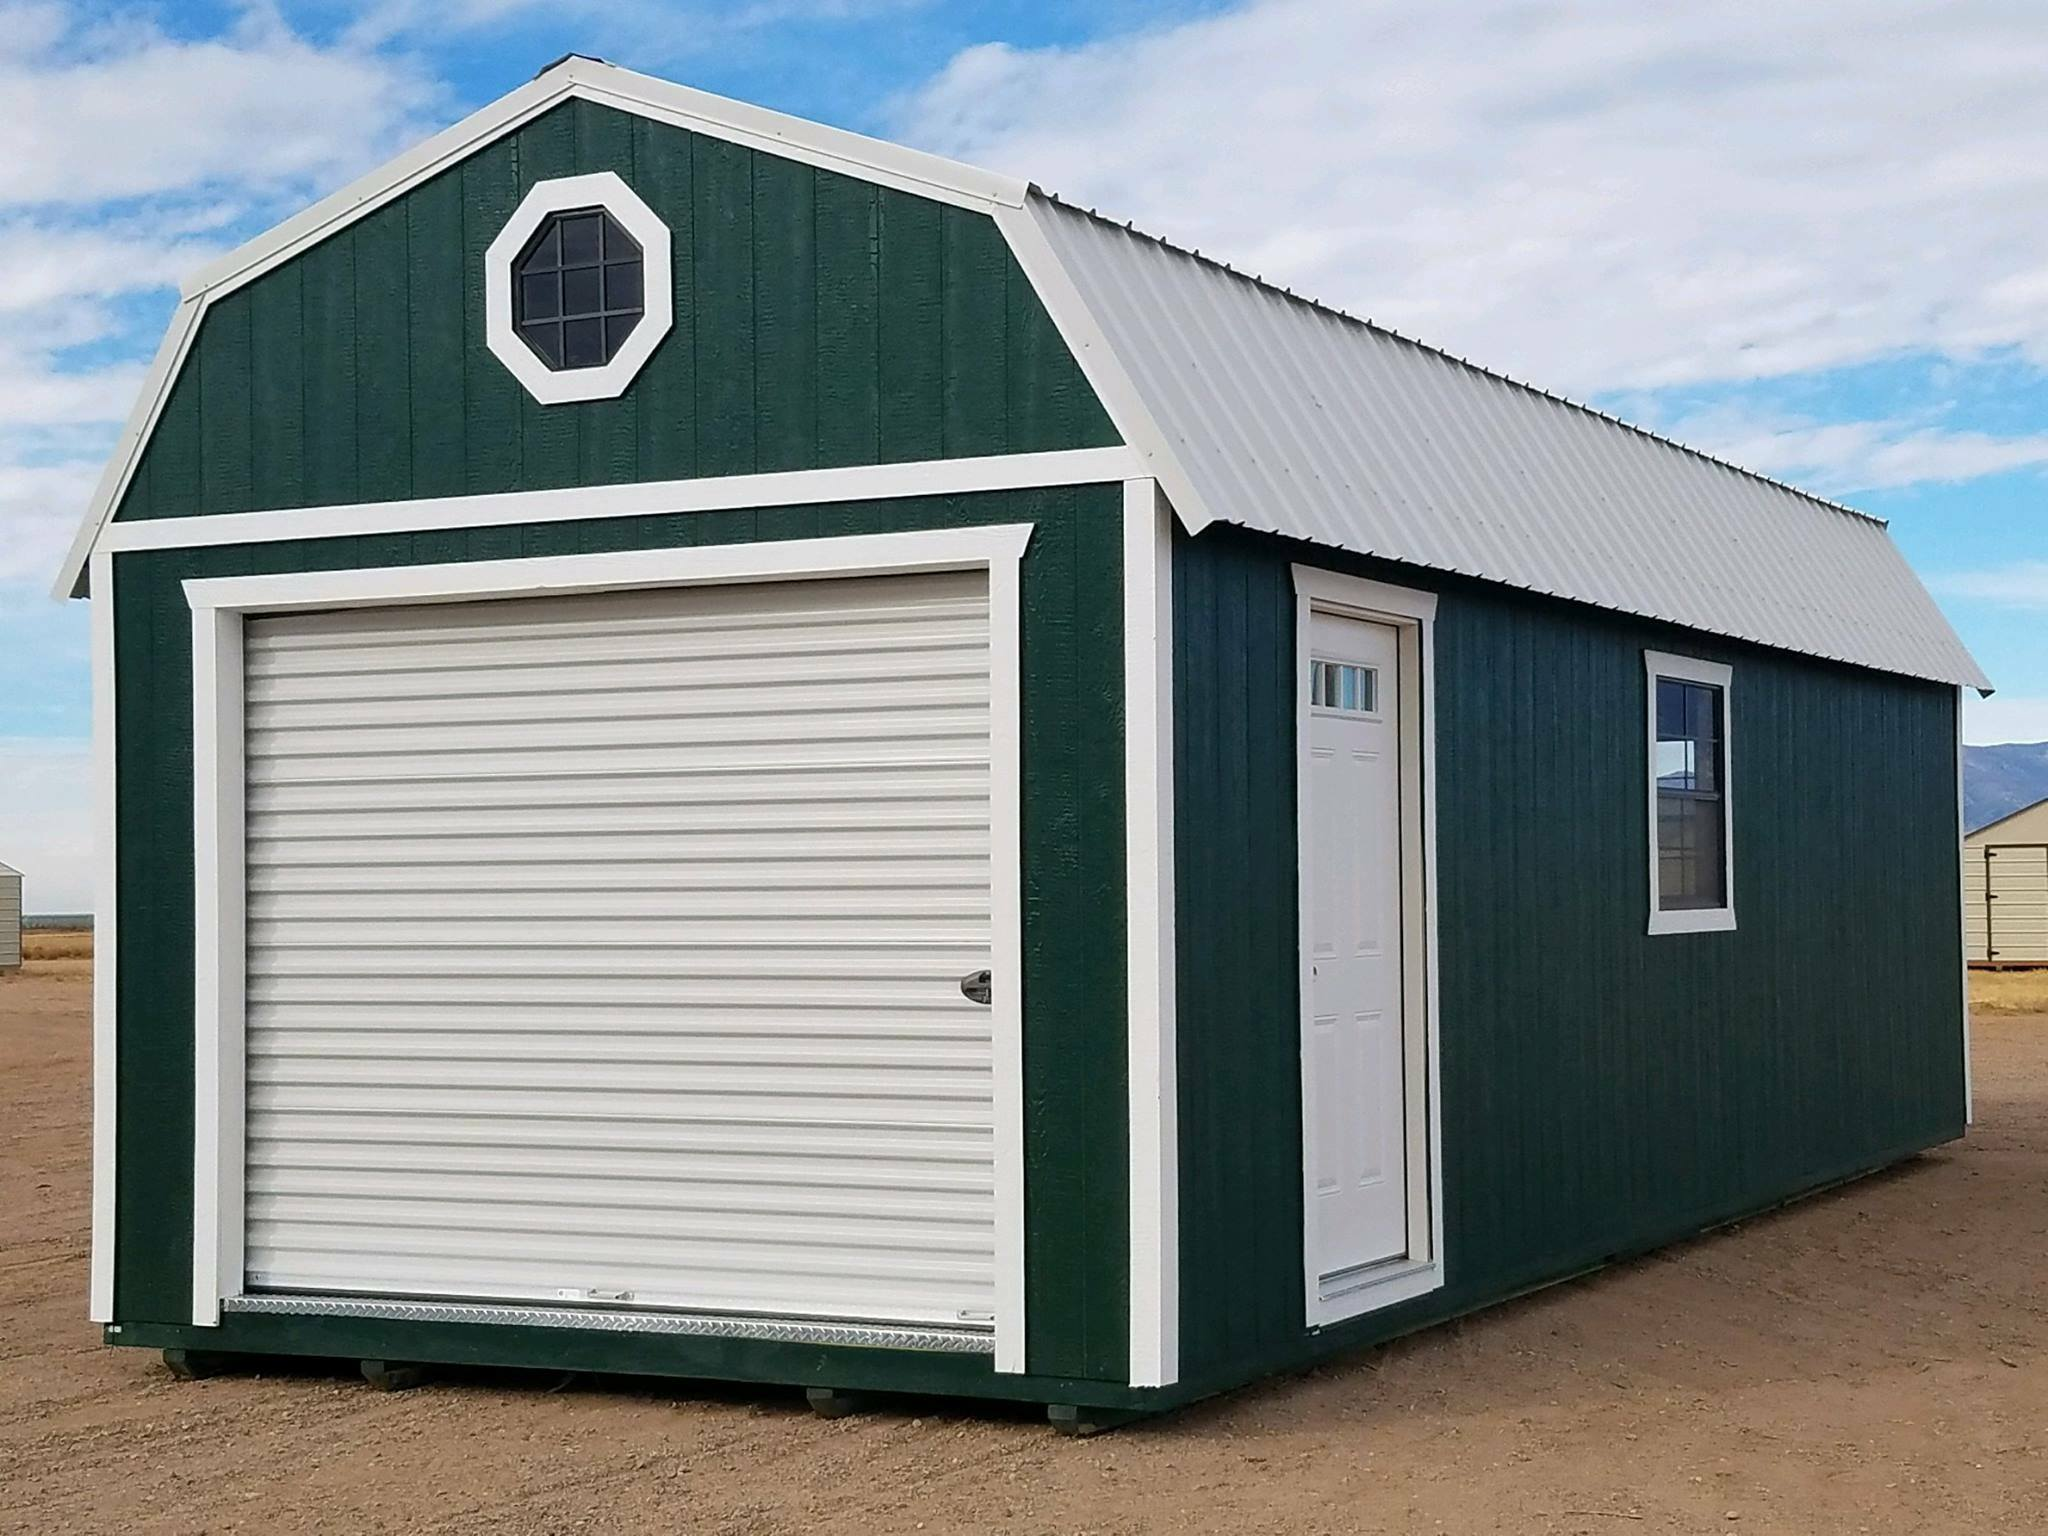 Green Shed